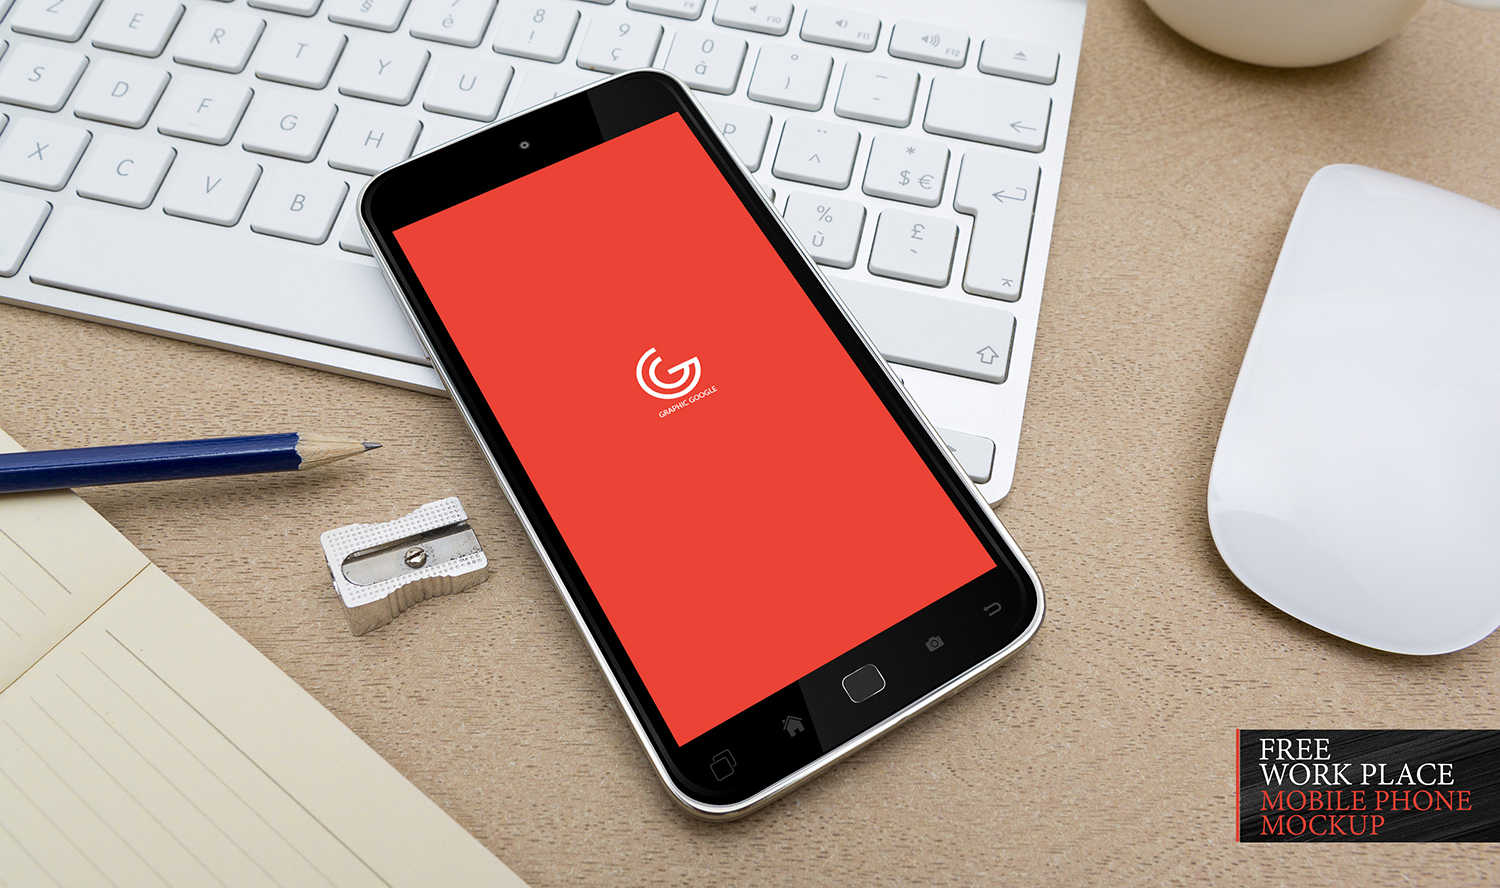 Free Work Place Mobile Phone Mockup